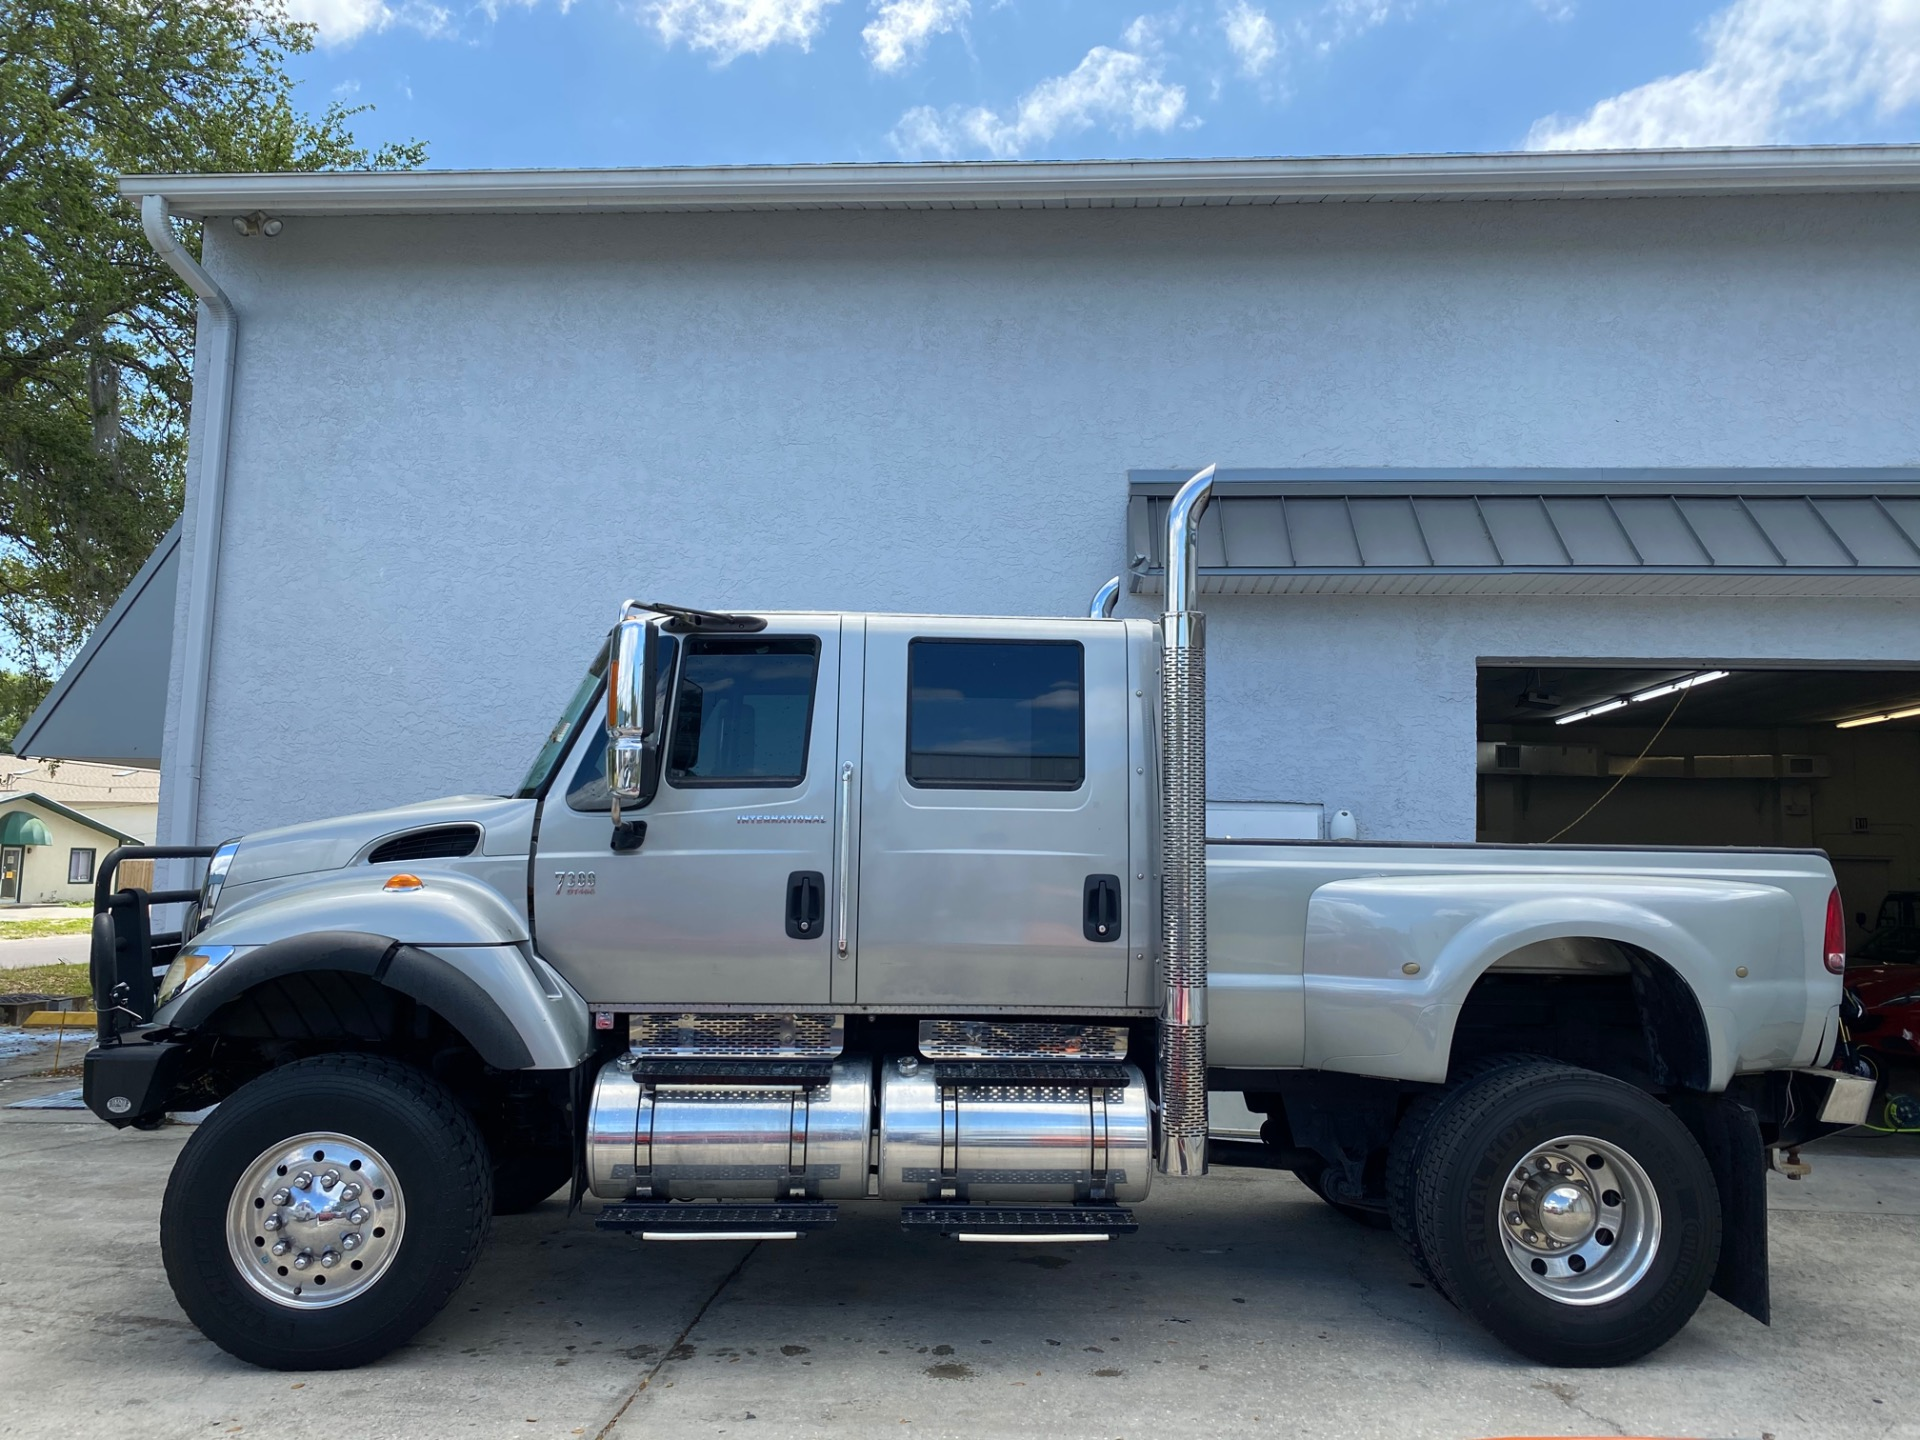 New 2005 INTERNATIONAL 7300 Crew Cab CXT for sale Sold at Track and Field Motors in Safety Harbor FL 34695 1